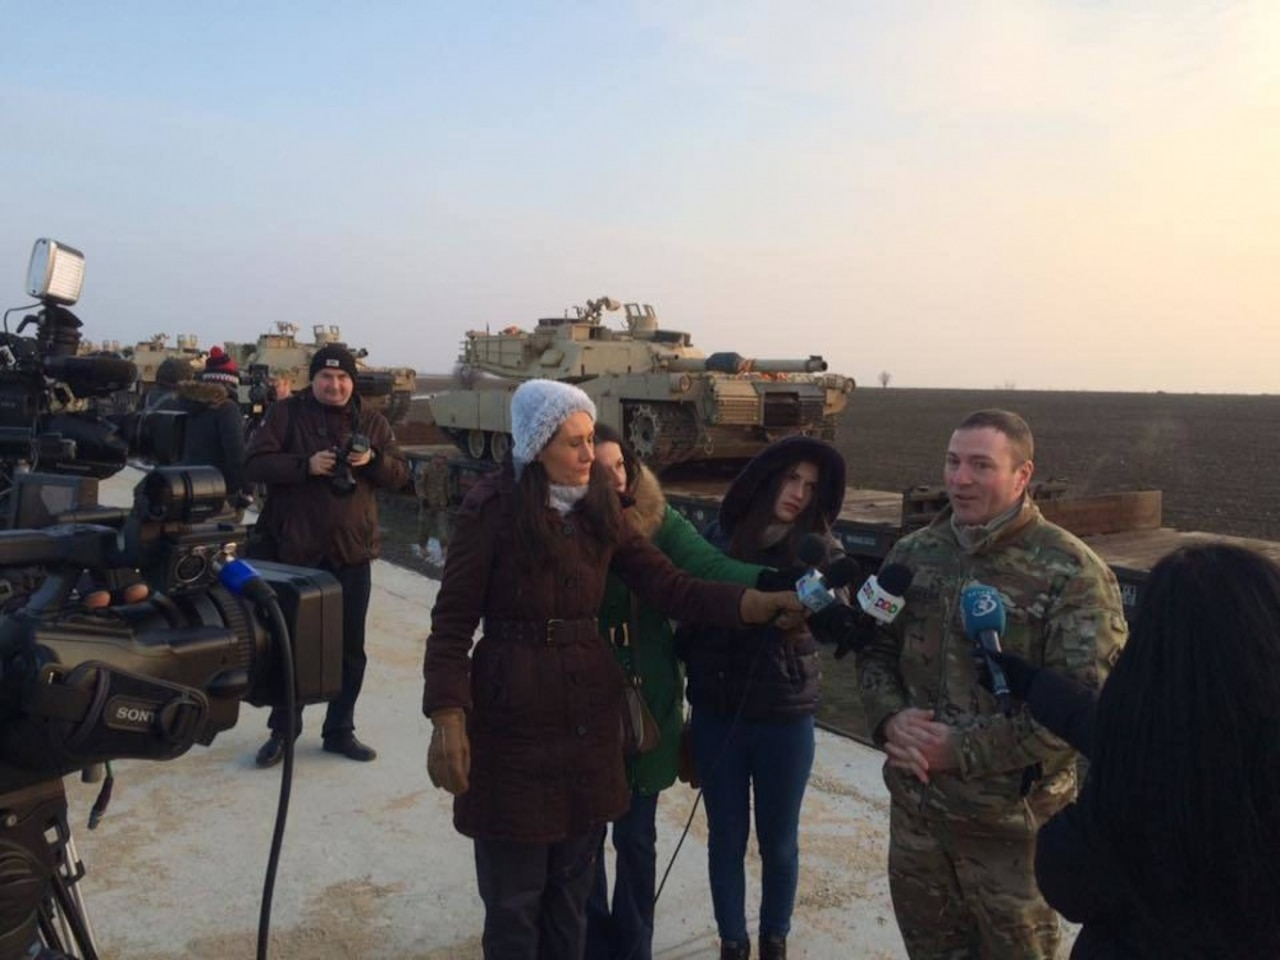 Army Maj. Scott Stephens, executive officer, 1st Battalion, 8th Infantry Regiment, fields questions from Romanian journalists at the arrival of the first 15 tanks to Mihail Kogalniceanu Airbase, Romania, Feb. 14, 2014. The arrival of the tanks and roughly 500 soldiers from 1st Battalion, 8th Infantry Regiment, marks the beginning of a continuous rotation of U.S. troops in southeastern Europe as part of Operation Atlantic Resolve. Army photo by 2nd Lt. Gunbold Ligden